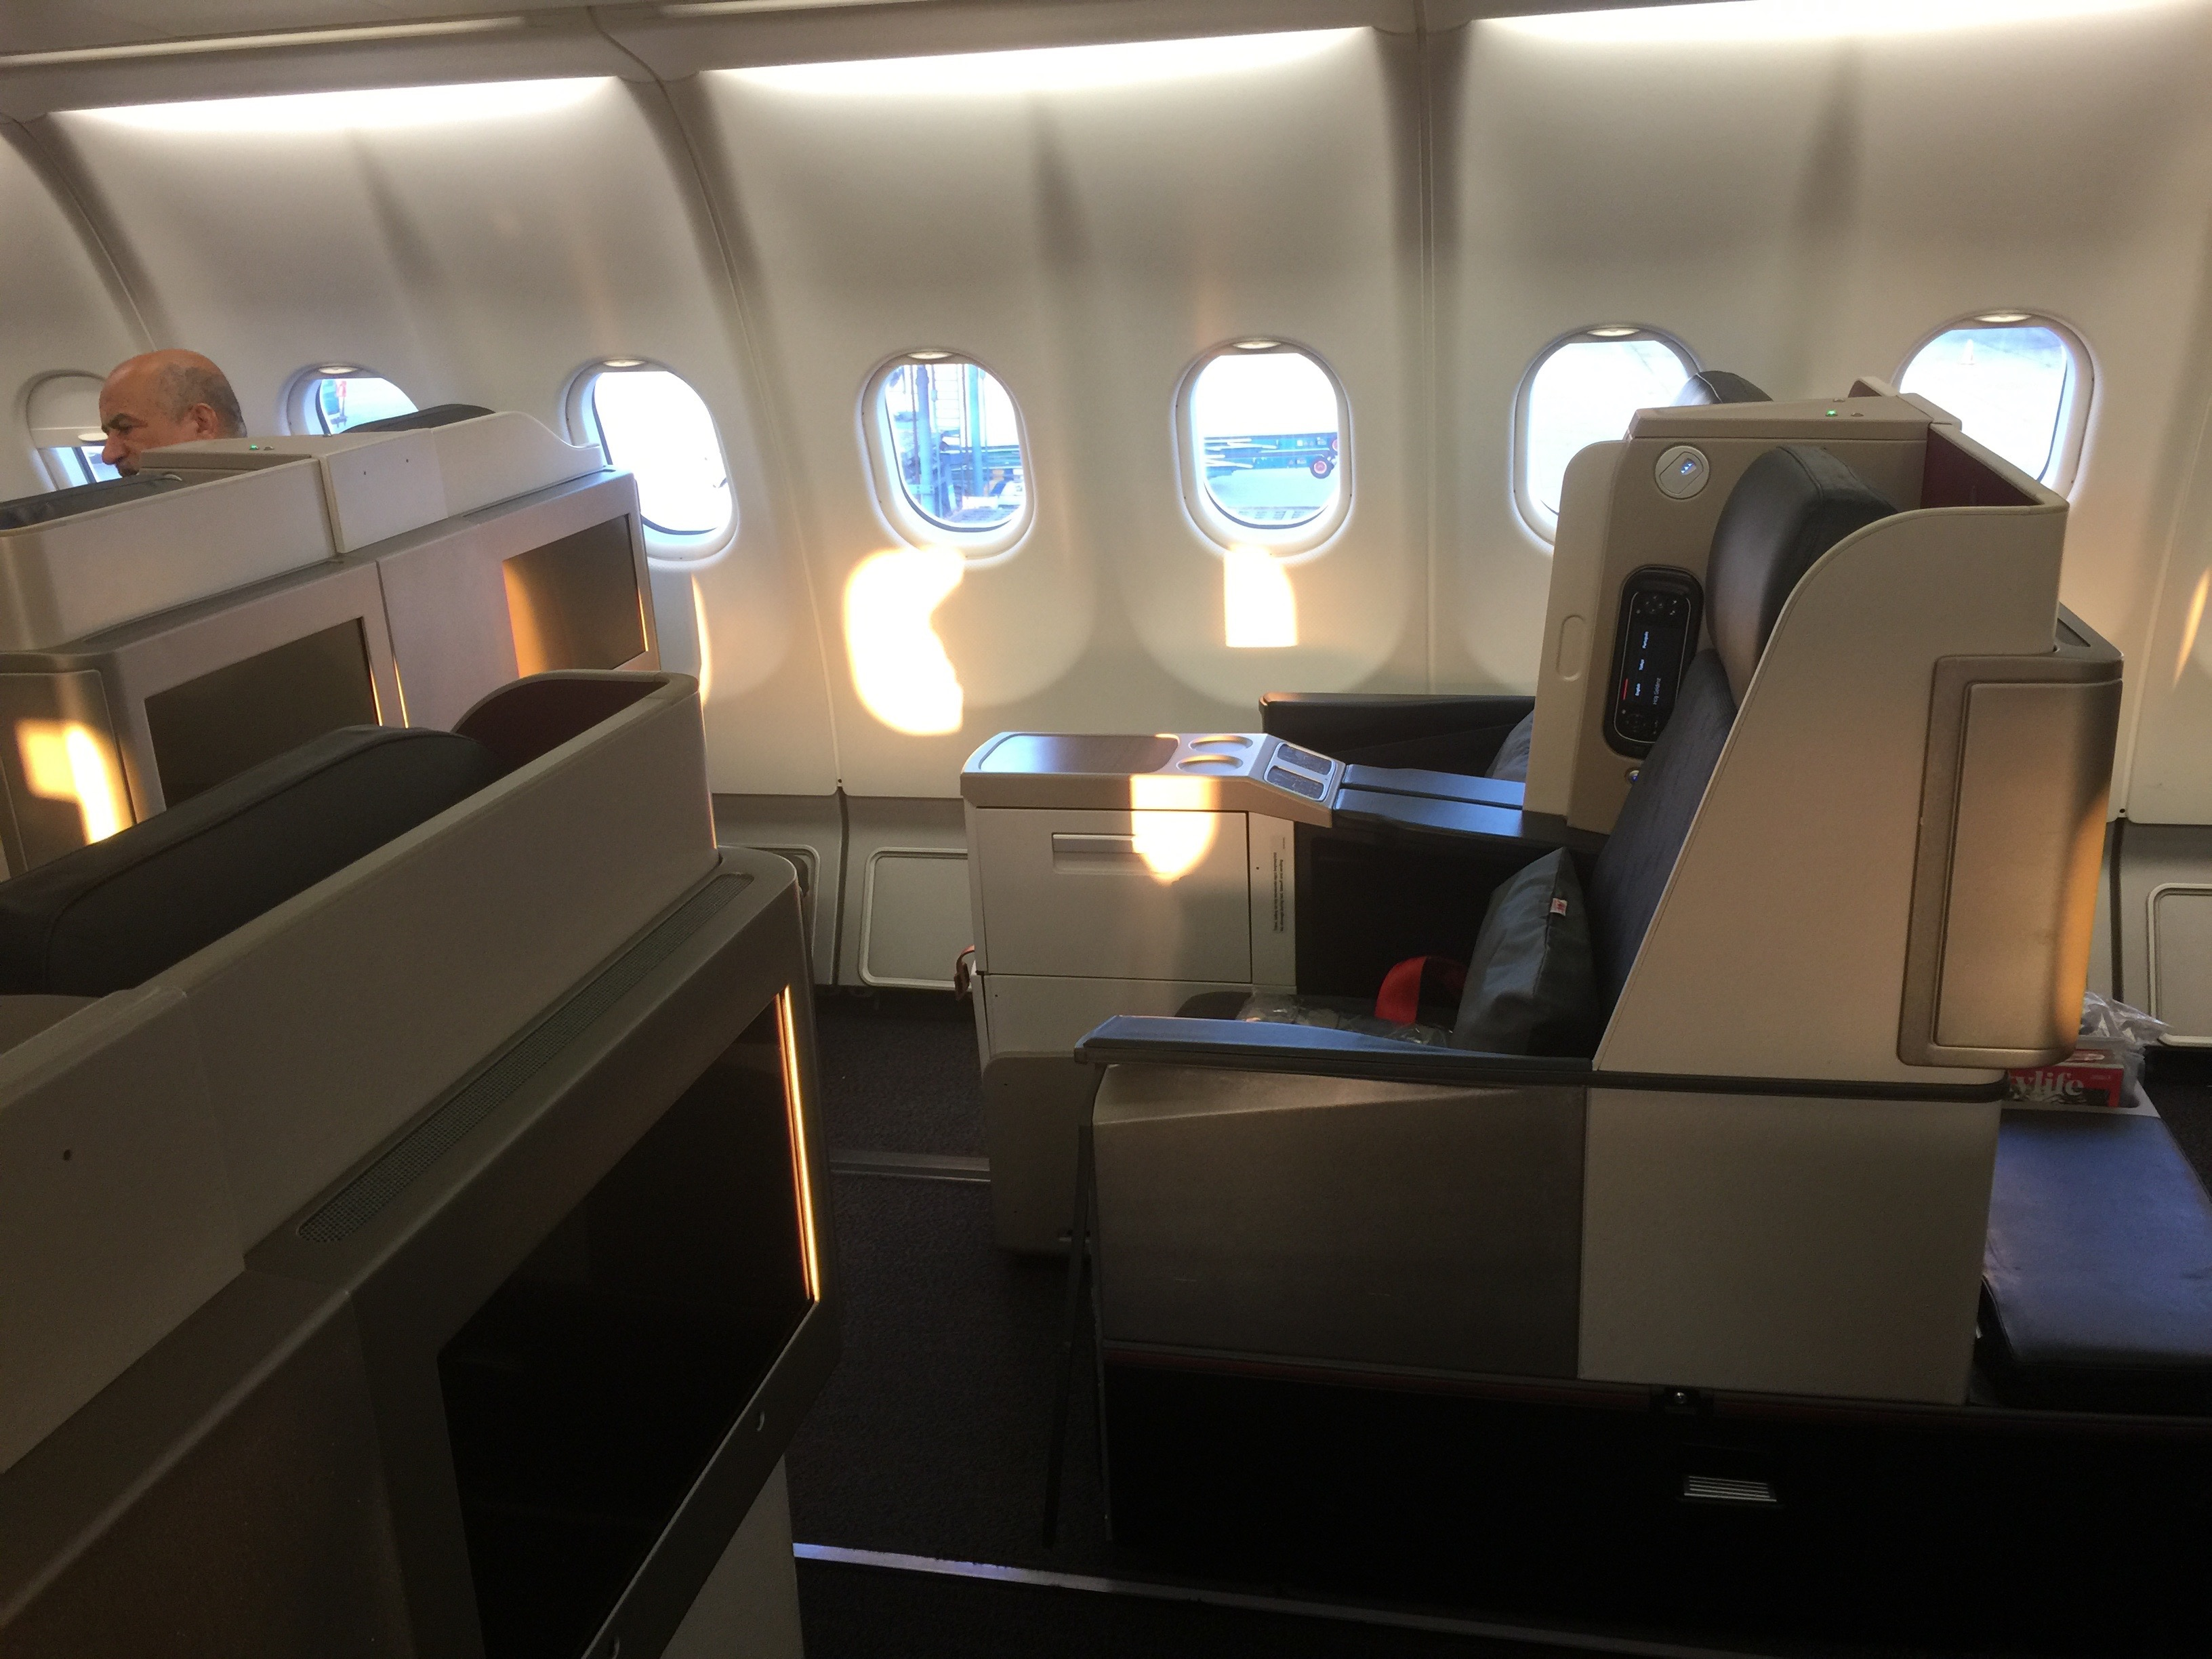 Turkish Airlines business class to Singapore